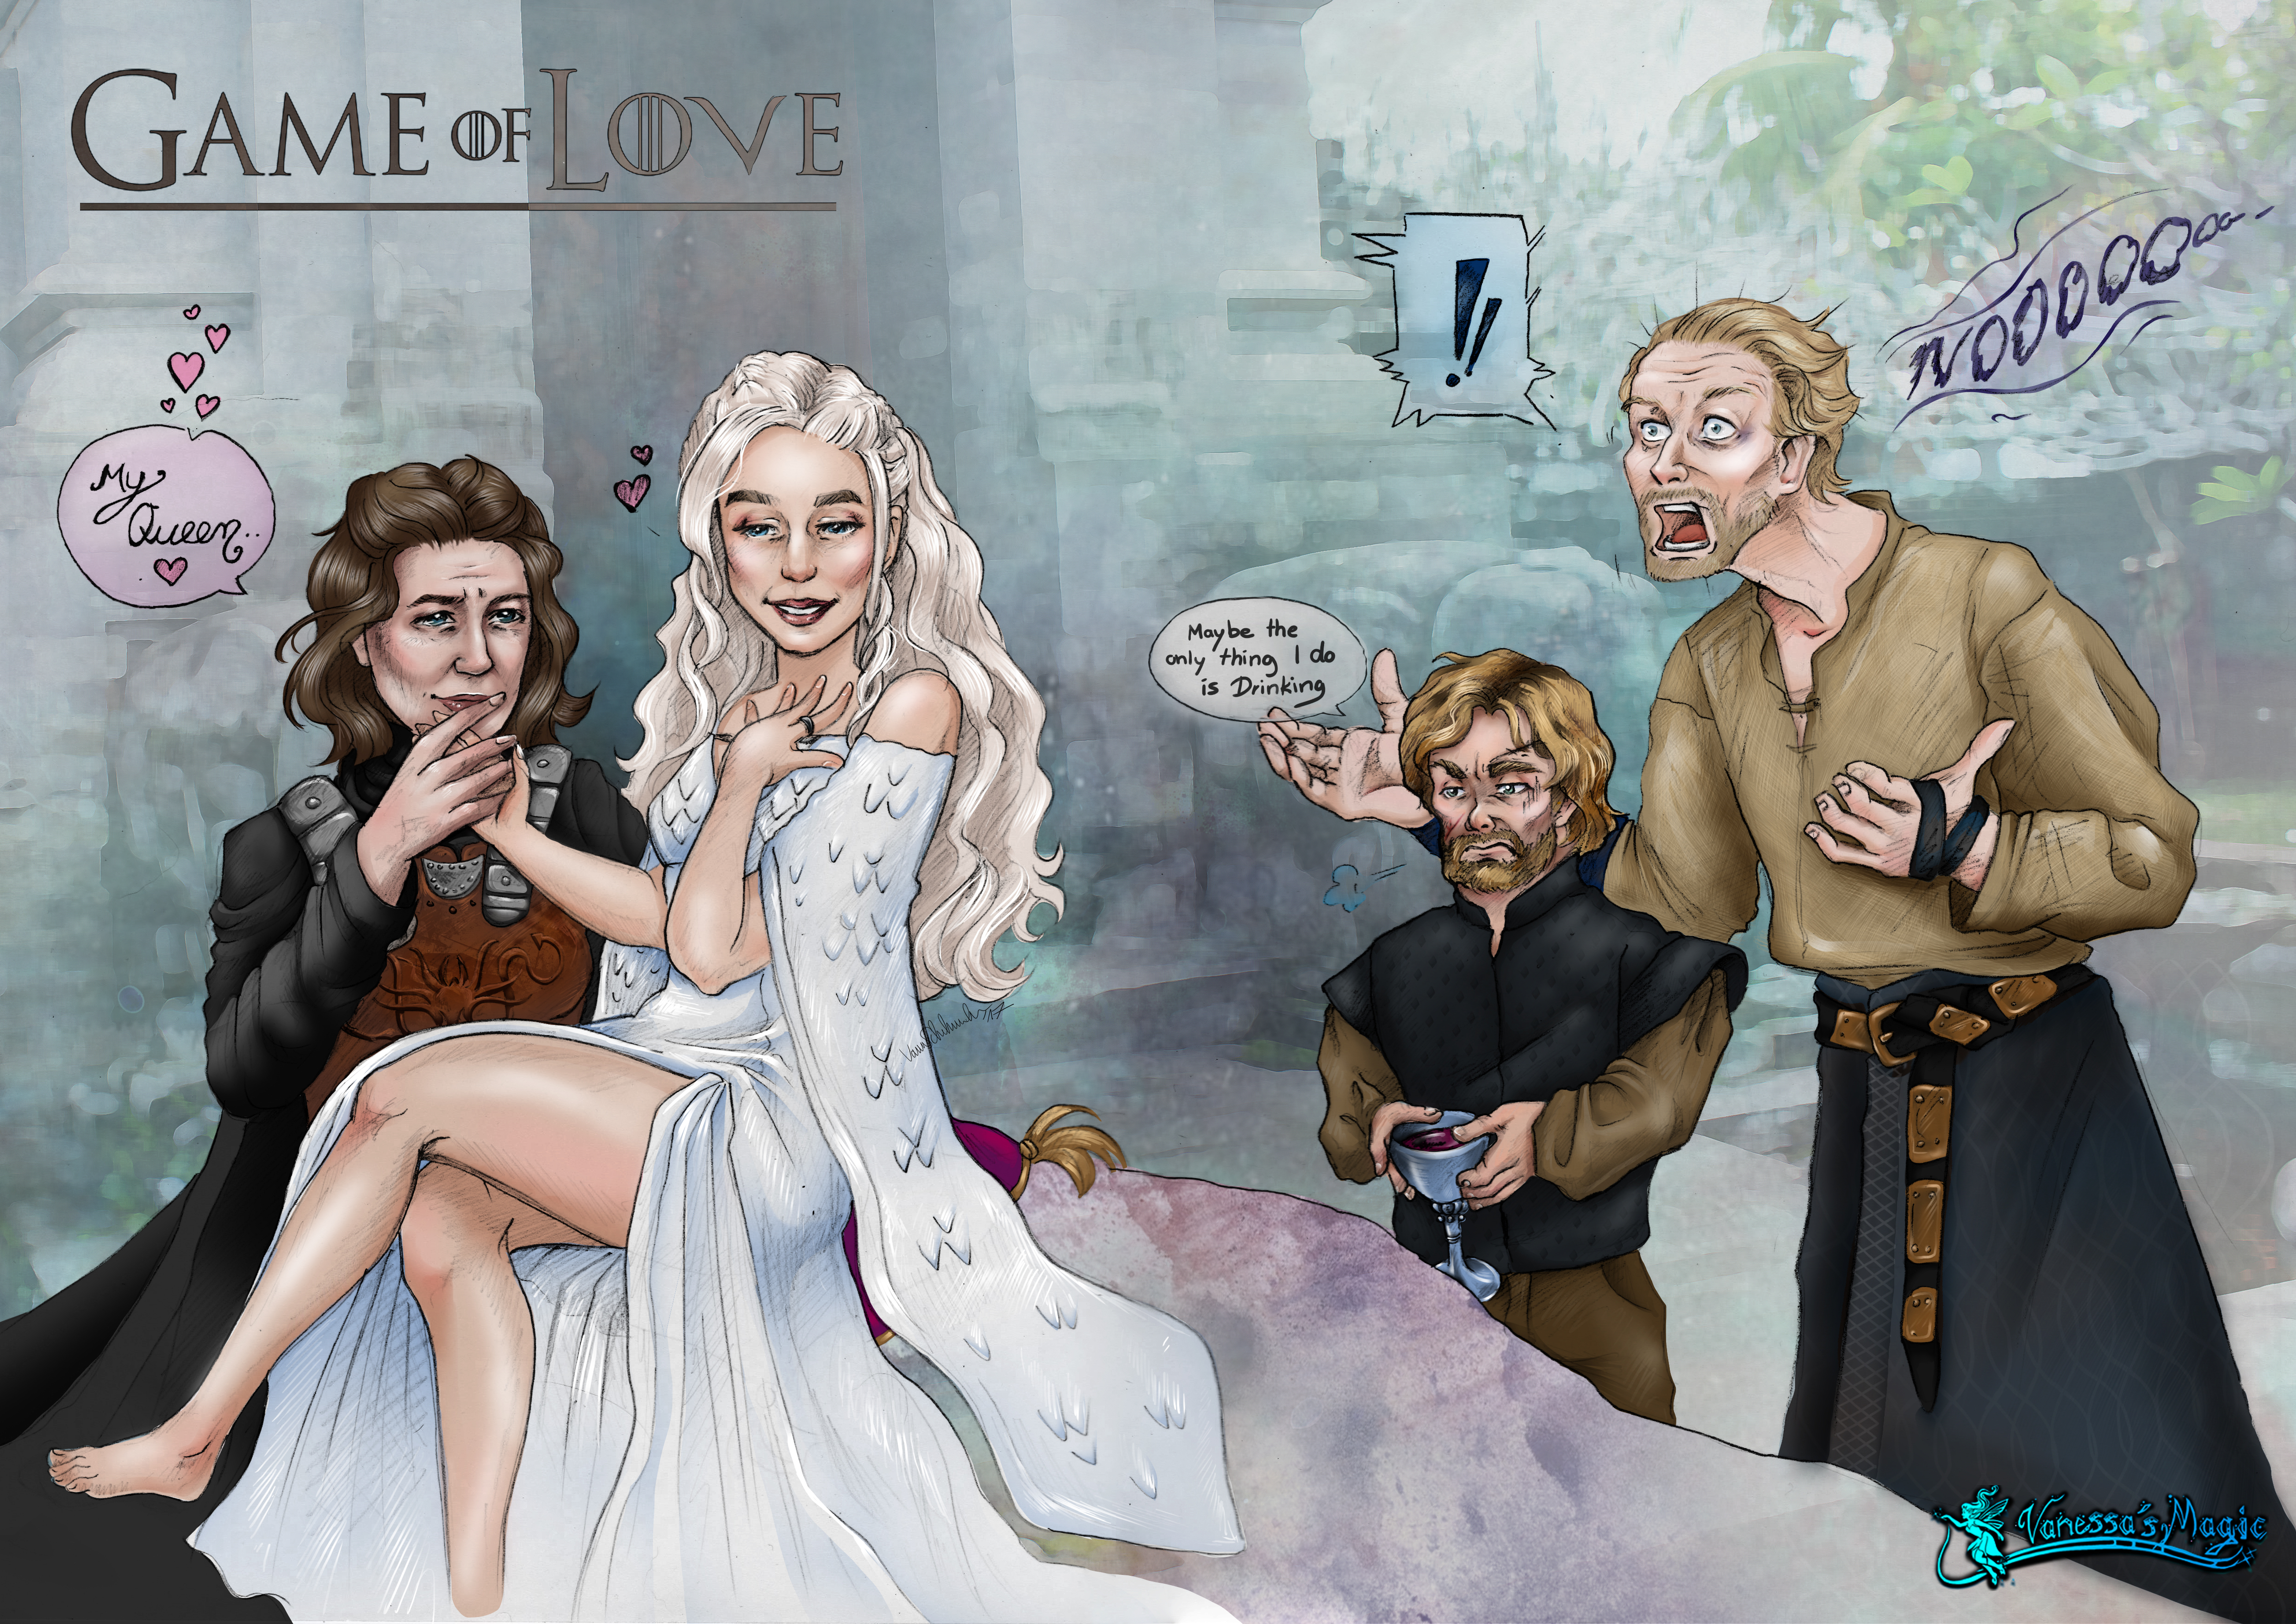 Game of Thrones Parodie mit Daenerys, Asha, Tyrion und Jorah